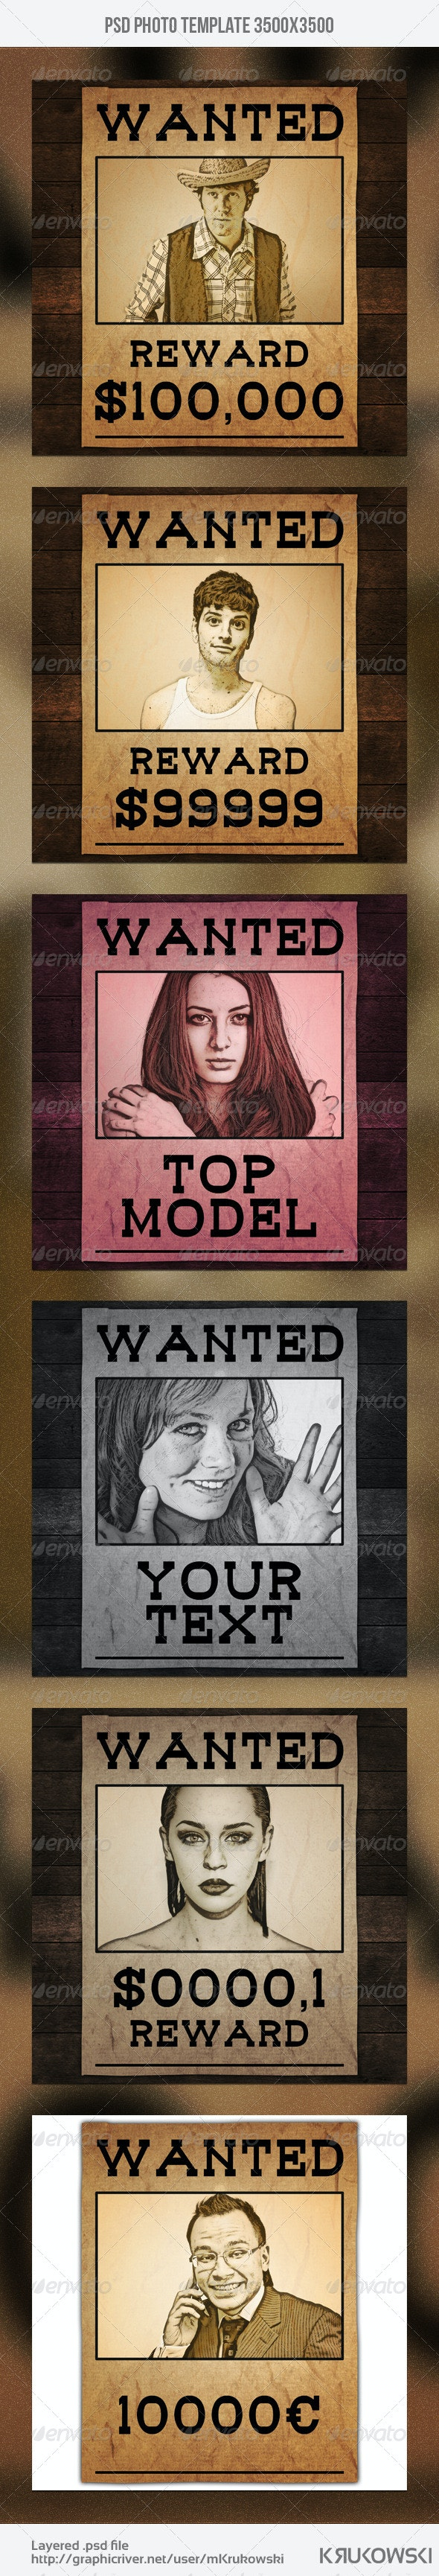 Wanted Poster Photo Template - Miscellaneous Photo Templates